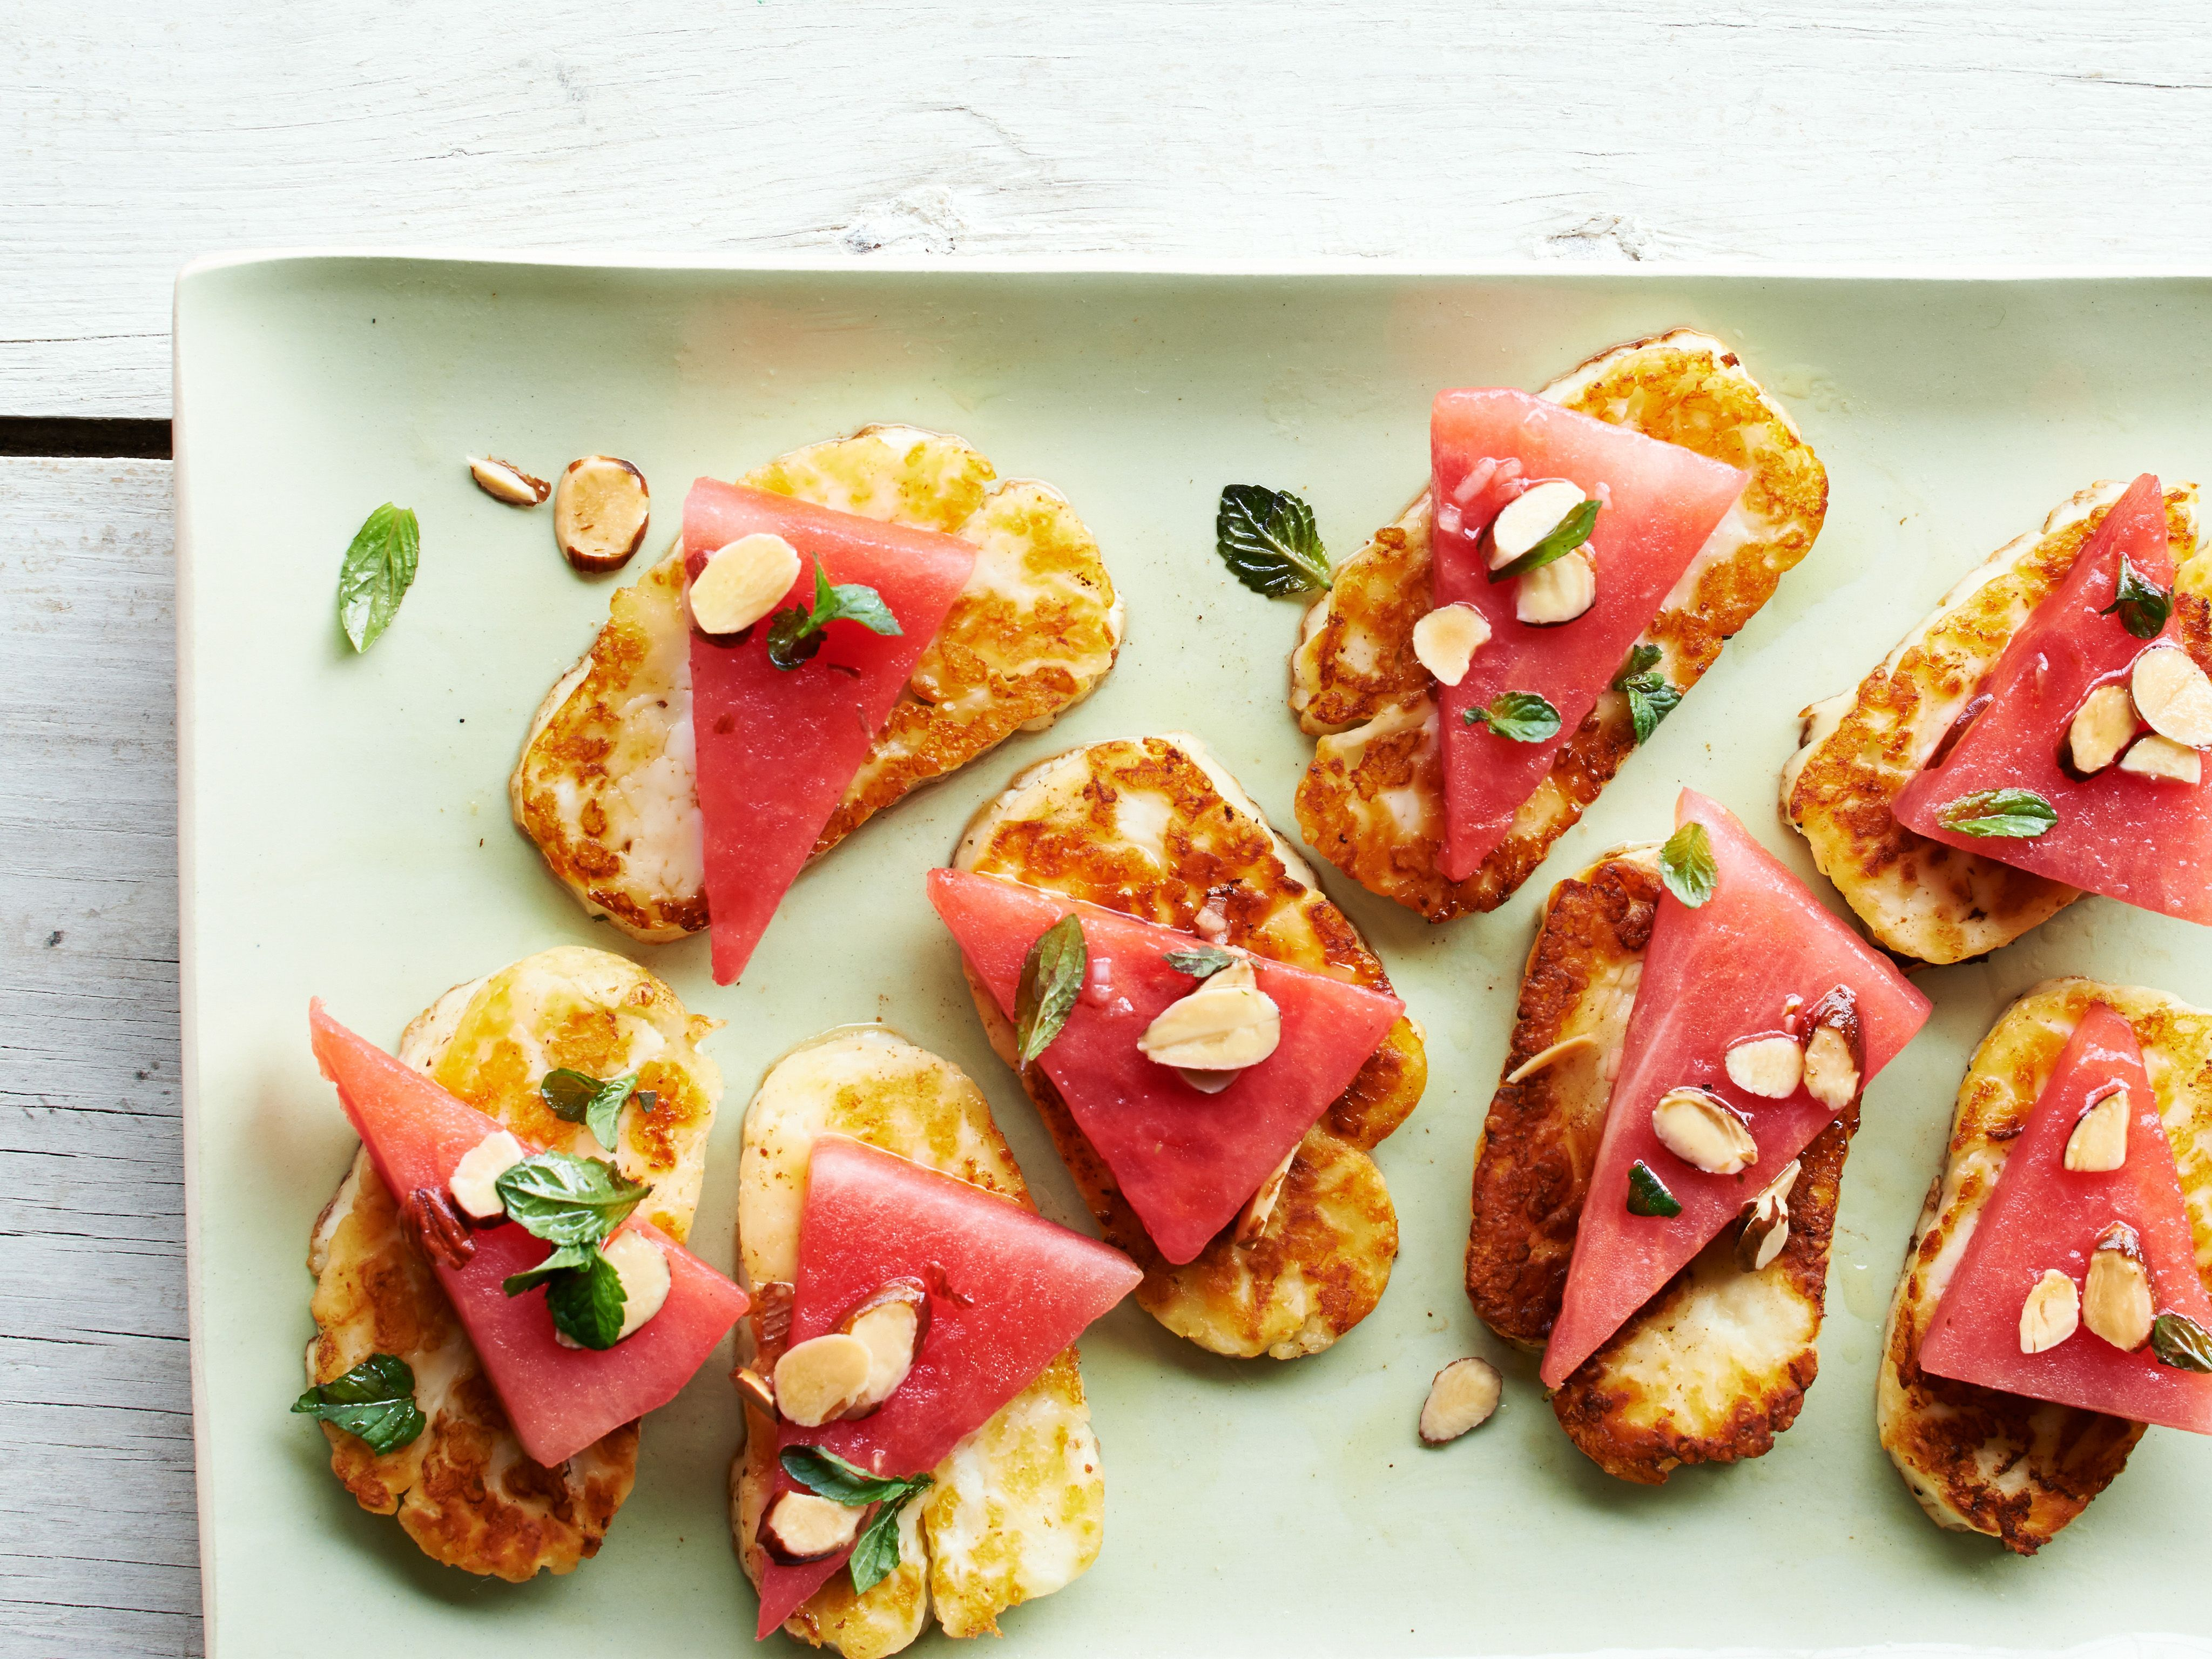 Watermelon and halloumi recipe more michael symon food and get this all star easy to follow watermelon and halloumi recipe from forumfinder Choice Image